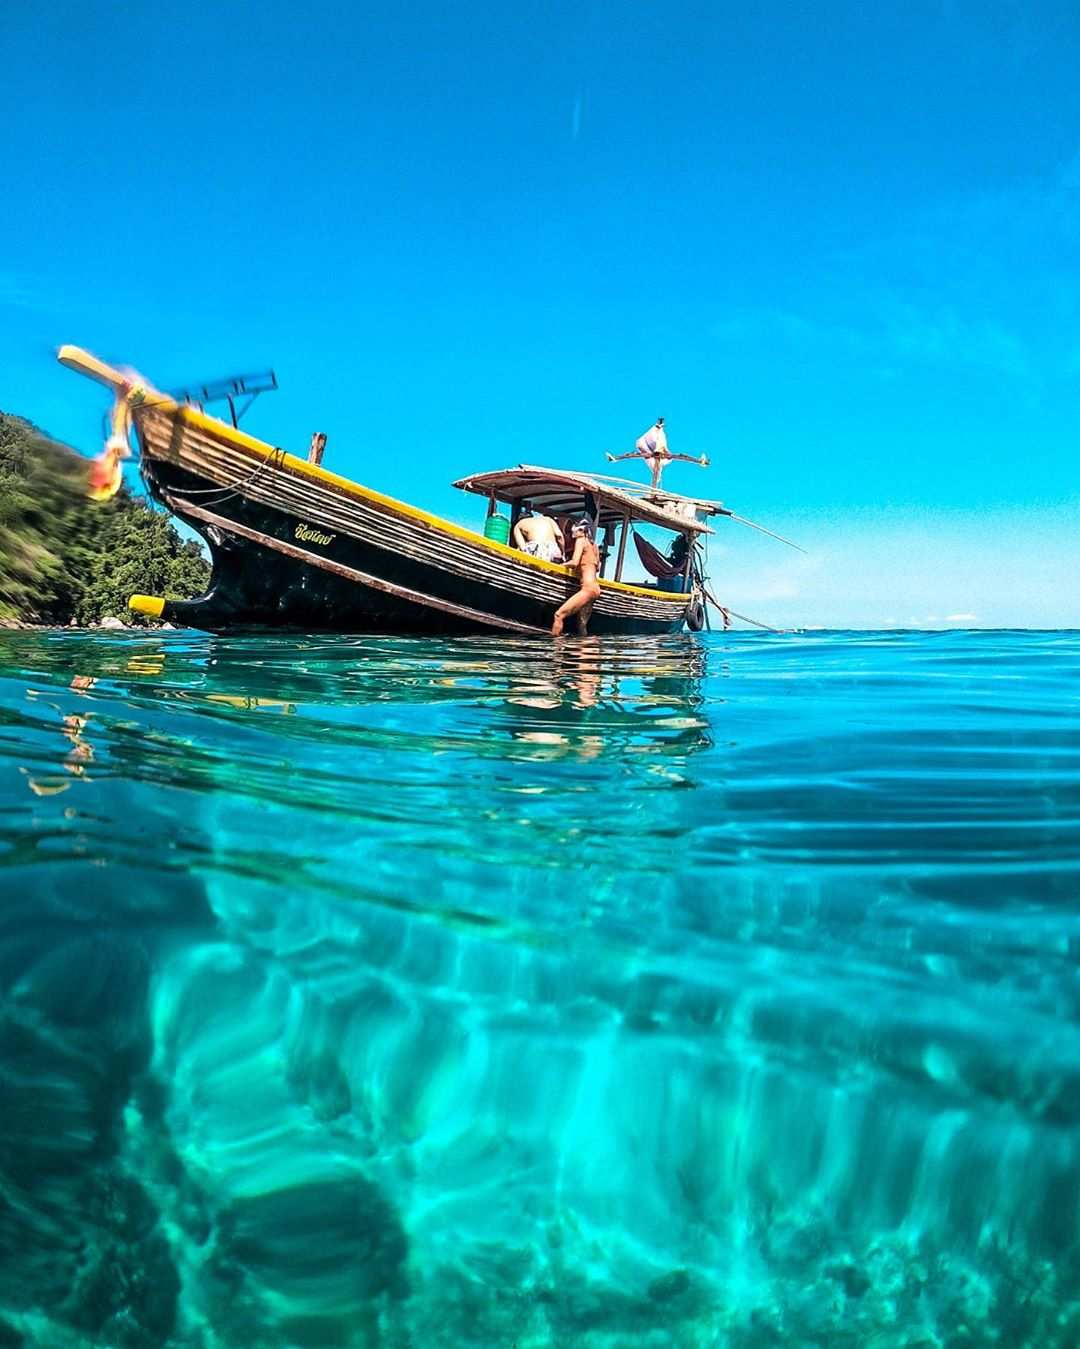 A longtail boat in the blue-green seawater of the Surin Islands